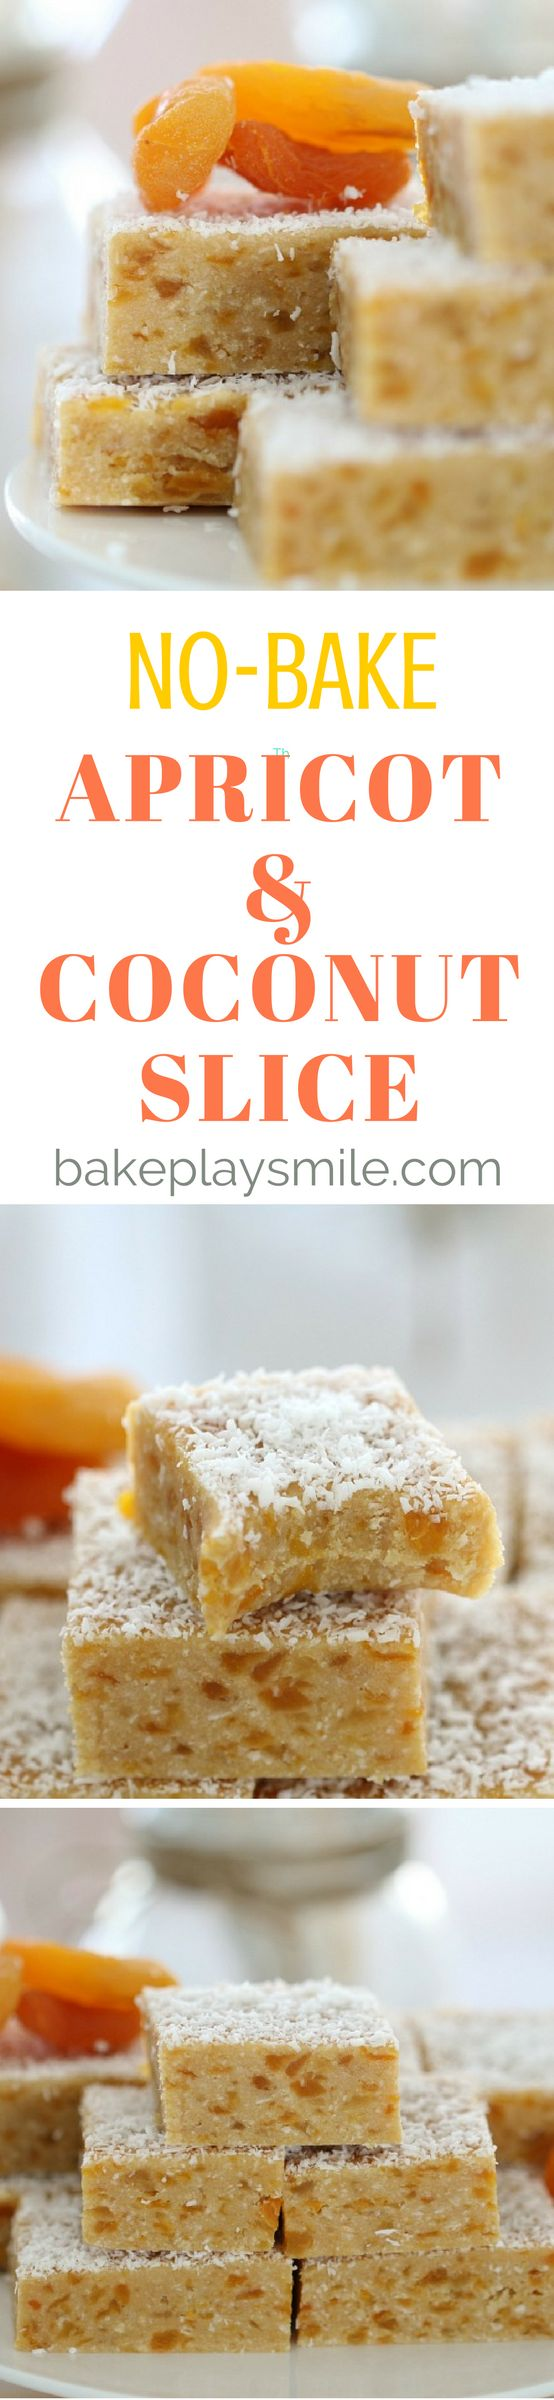 Want an Apricot Coconut Slice that is completely no-bake, takes just 5 minutes to prepare and is absolutely delicious? This is THE recipe for you! #apricot #coconut #slice #bars #easy #nobake #conventional #thermomix